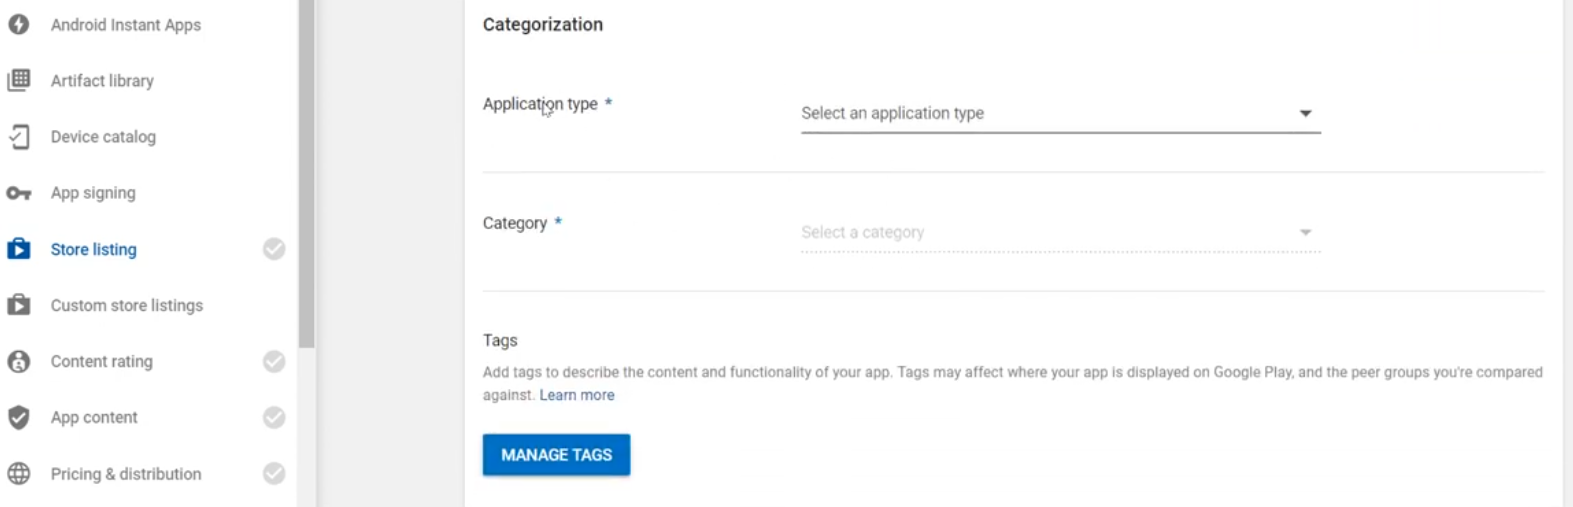 application-type-and-category